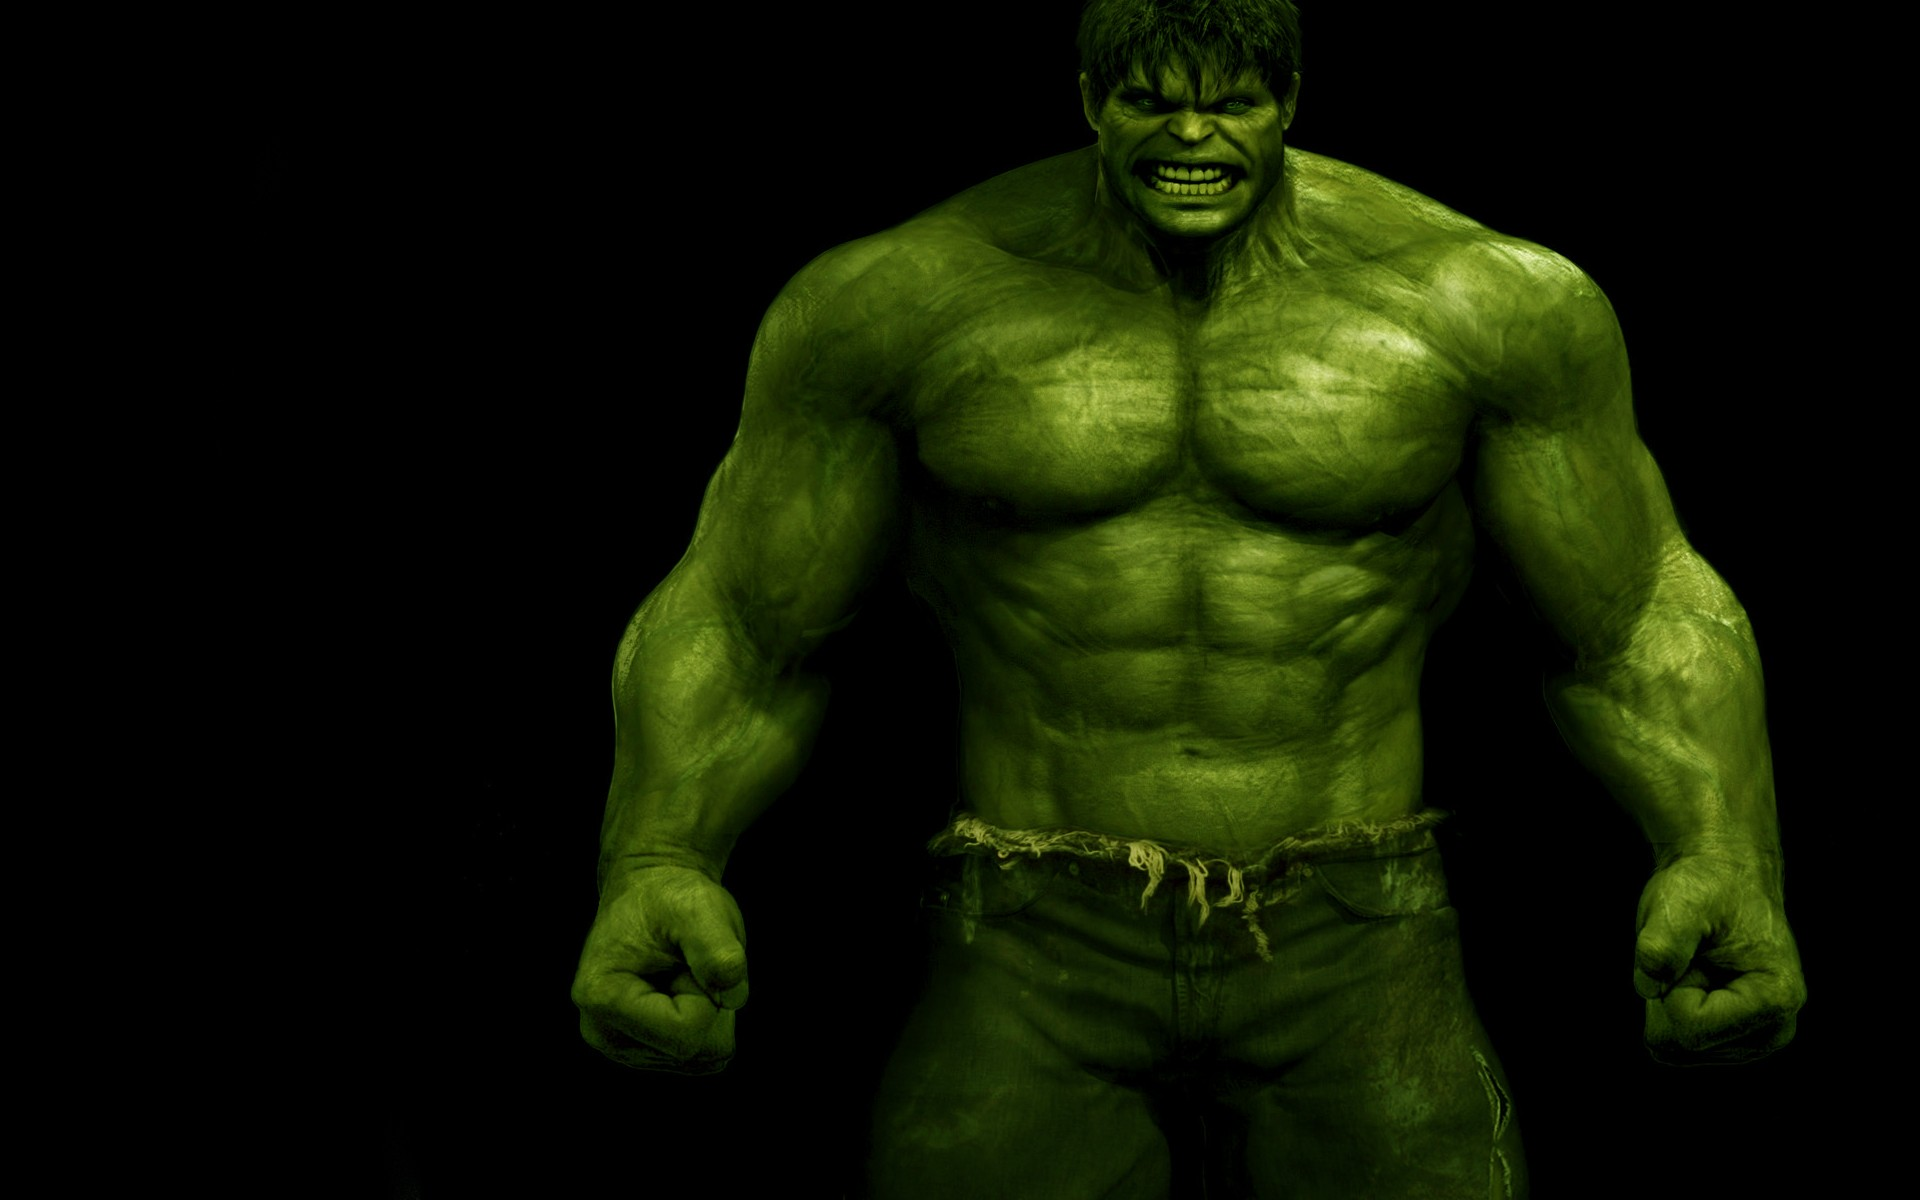 Incredible Hulk Wallpapers 4USkYcom 1920x1200